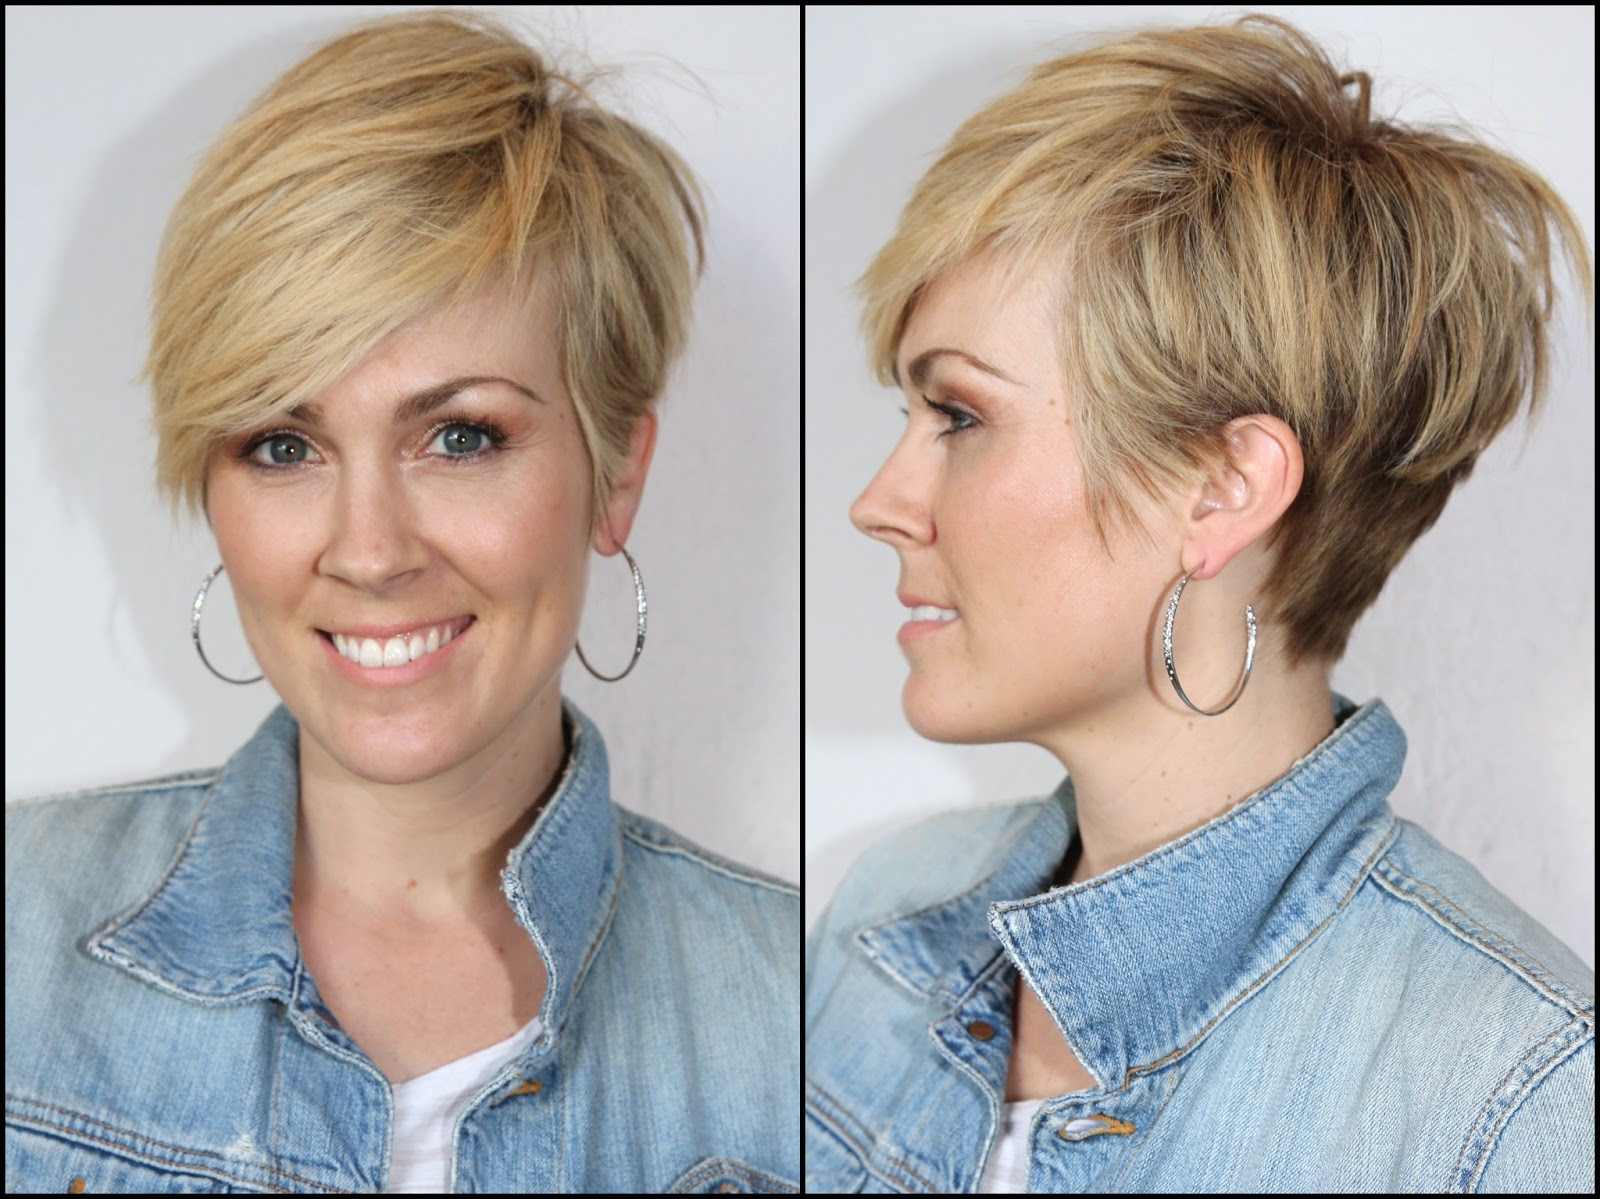 Short Haircuts Cute For20s: LOS ANGELES: CATCHING UP WITH RACHEL CANNON